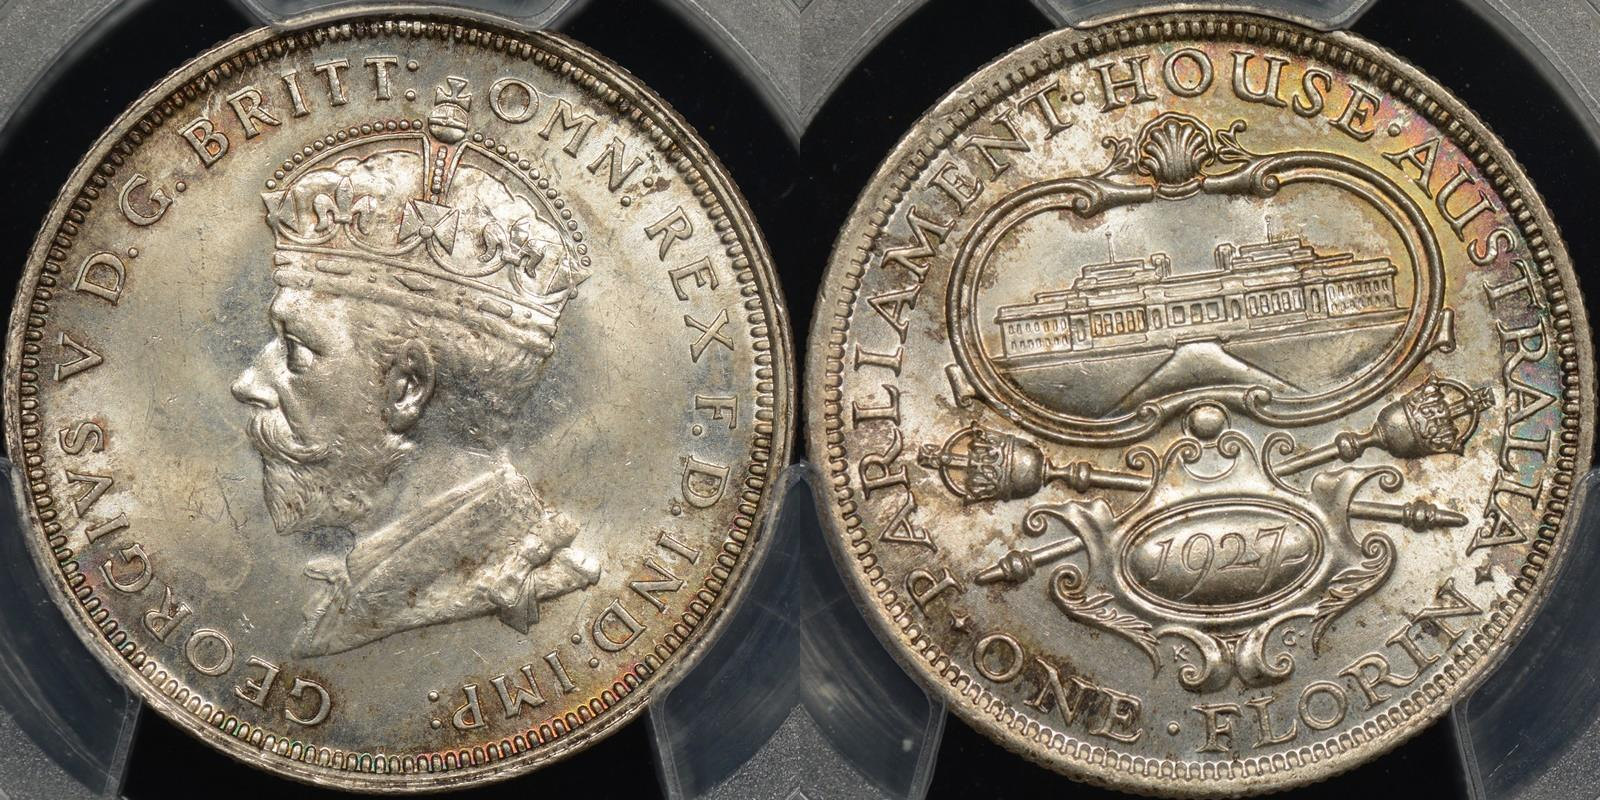 Australia 1927 parliament florin Choice Uncirculated PCGS MS64[8]